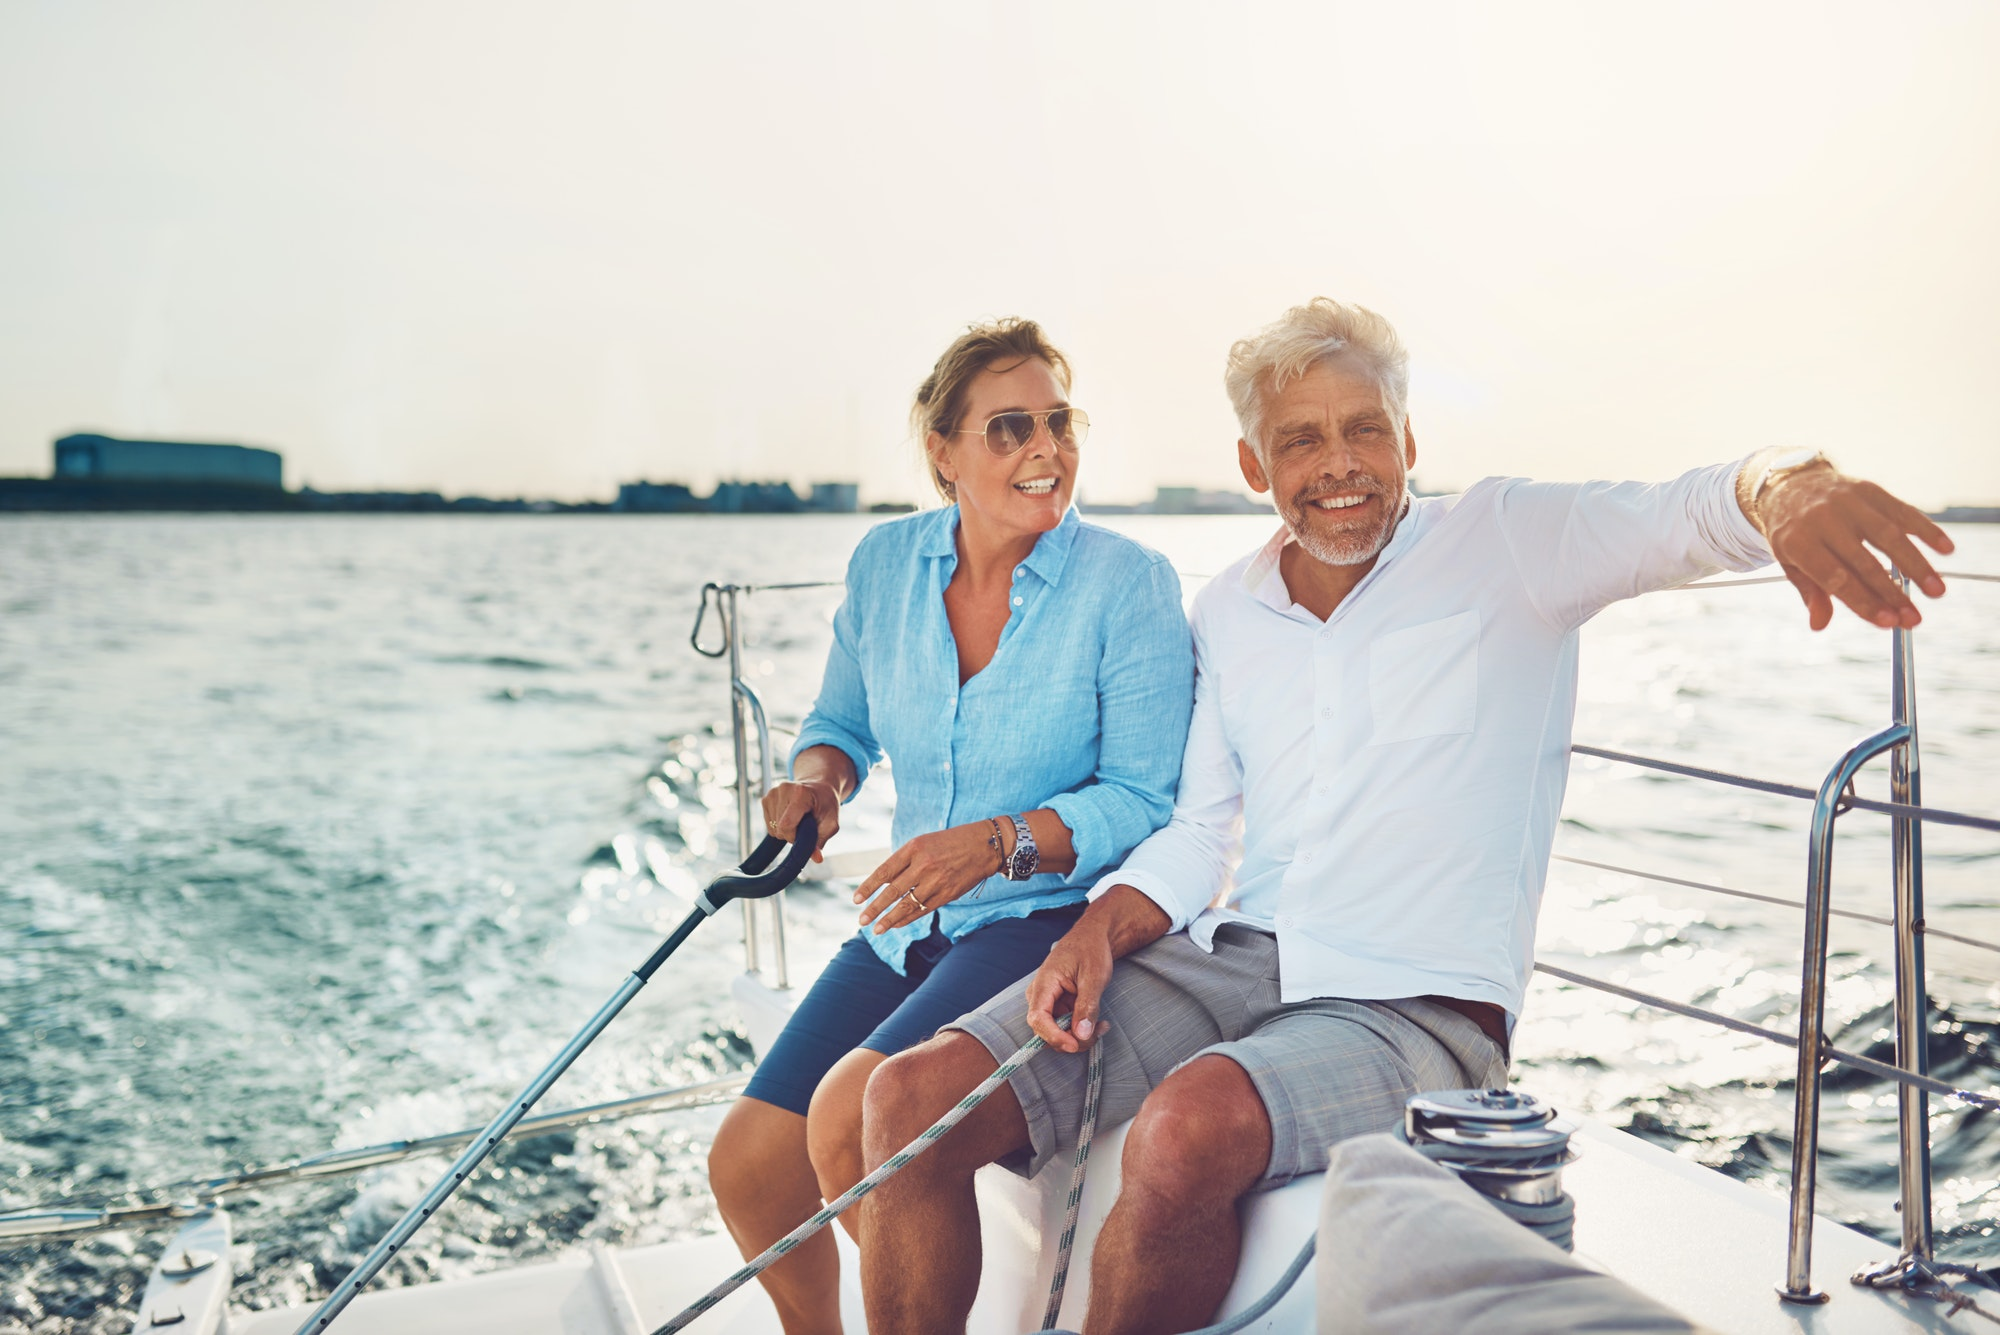 Smiling mature couple sailing their boat on a sunny afternoon